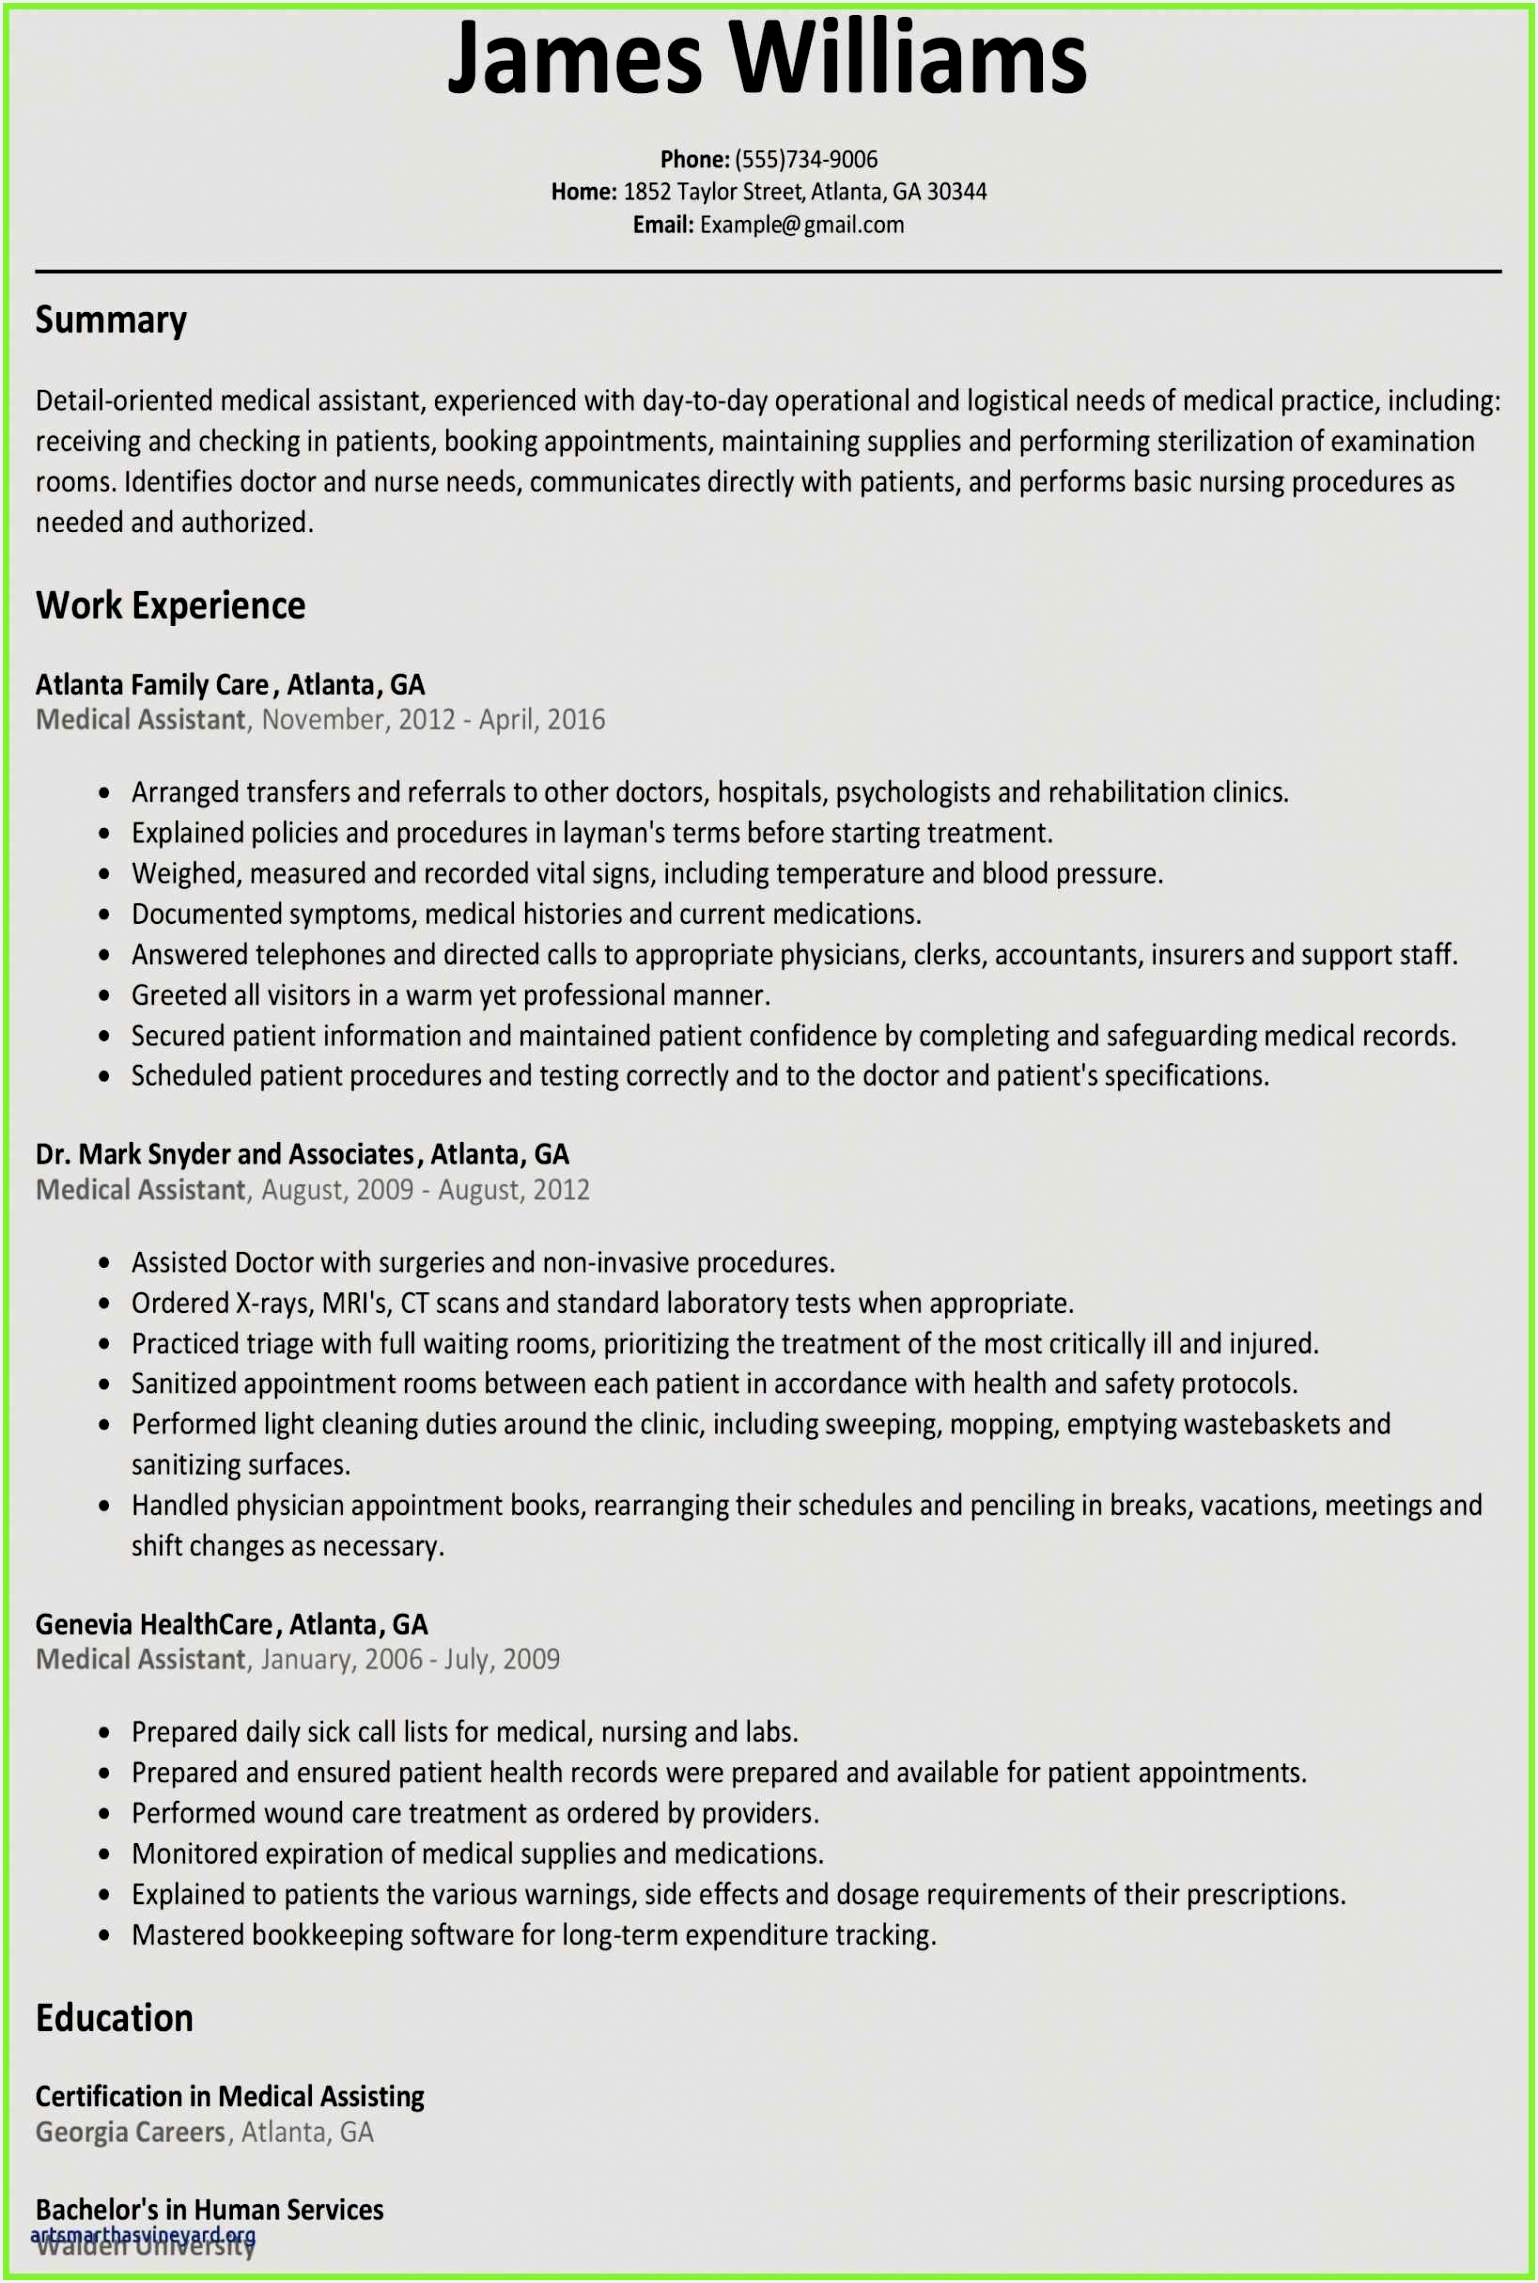 Certified Medical assistant Resume Sample Cgqzh Best Of Free Resume Evaluation Online Of 4 Certified Medical assistant Resume Sample